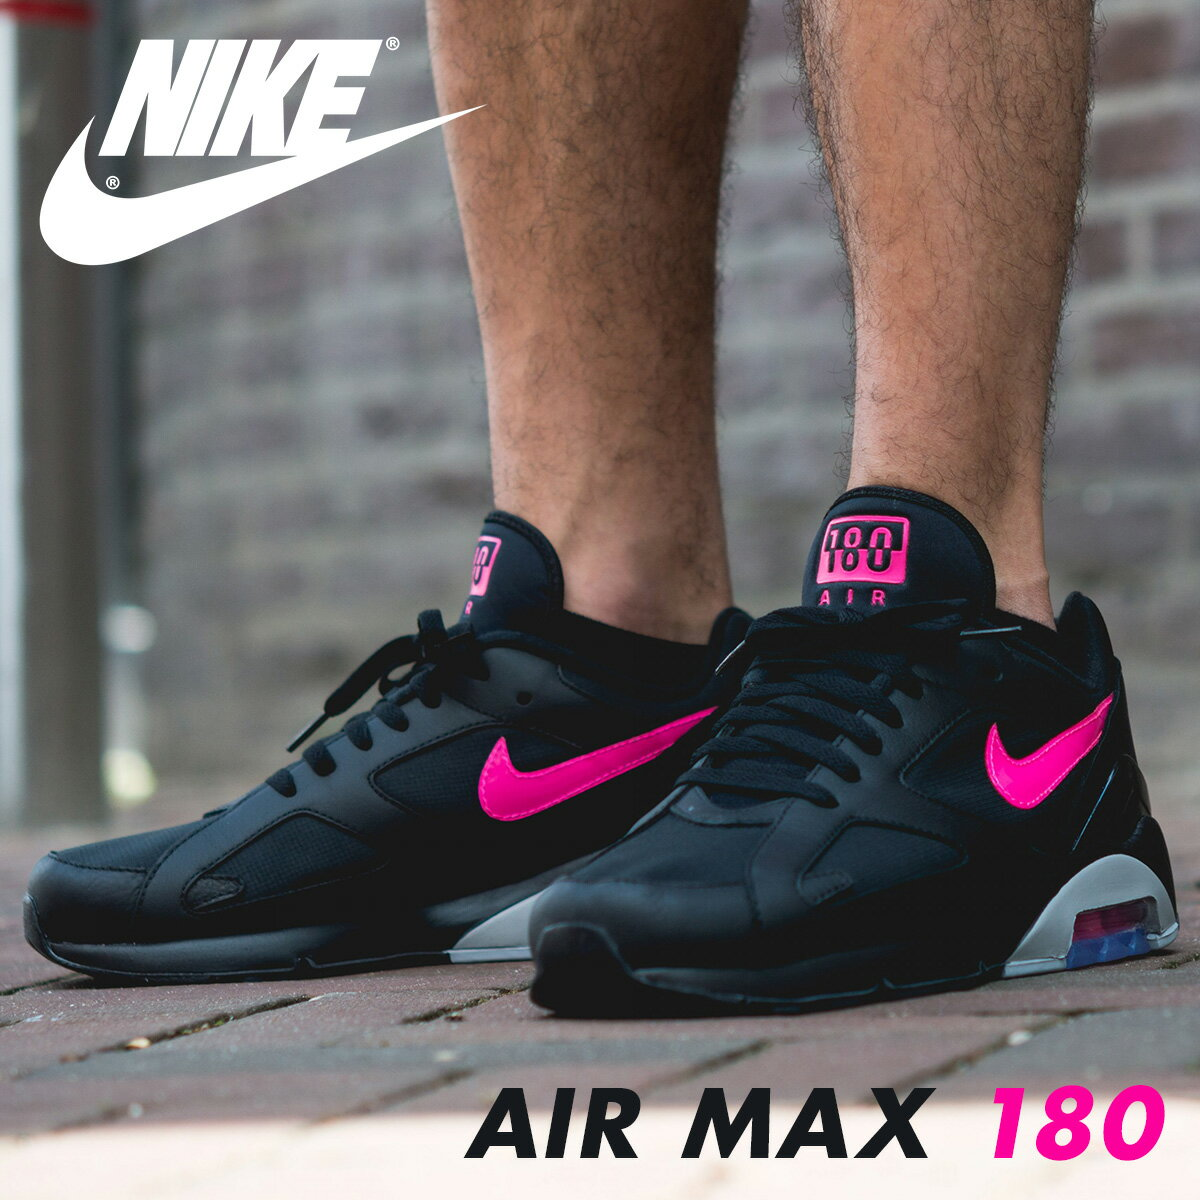 brand new f76da c5950 NIKE AIR MAX 180 Kie Ney AMAX 180 sneakers men AQ9974-001 black load  planned Shinnyu load in reservation product 81 containing